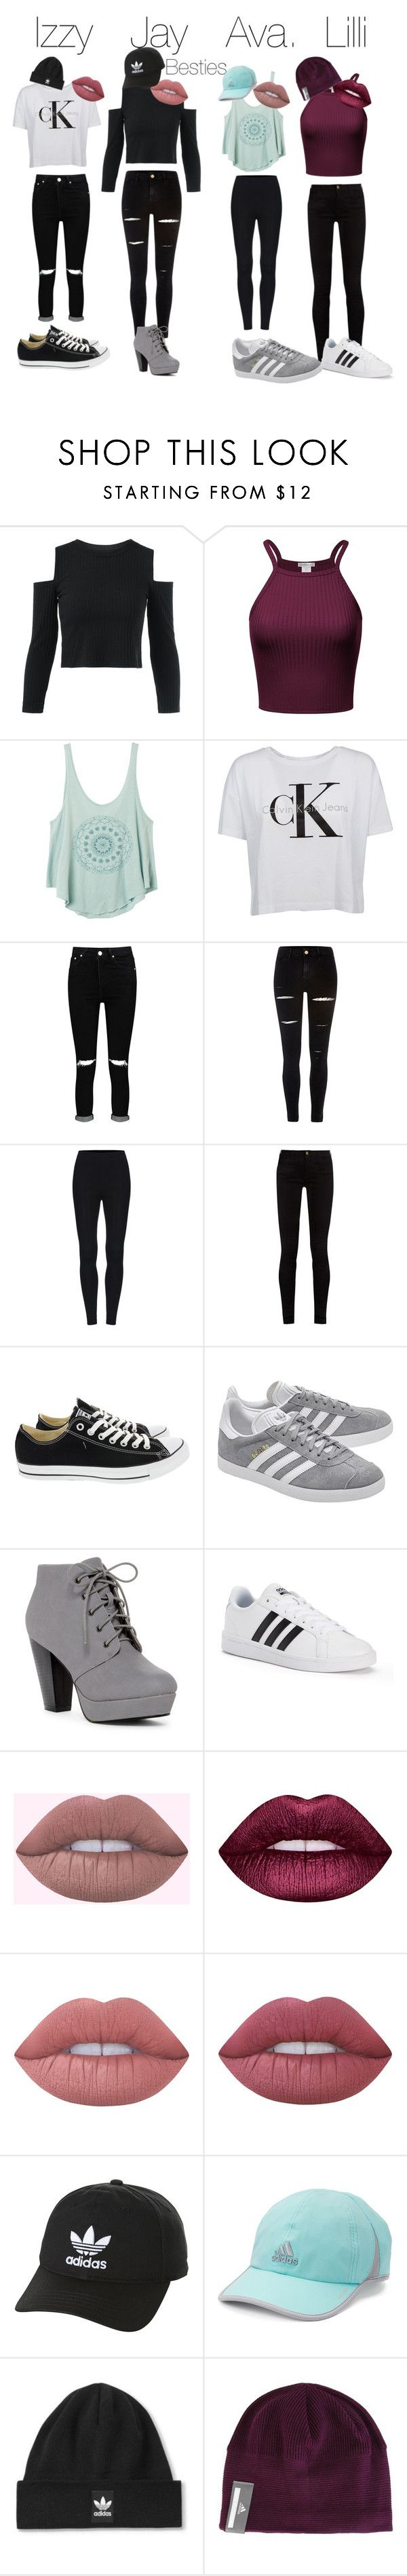 """Squad"" by isabella2845 ❤ liked on Polyvore featuring RVCA, Calvin Klein, Boohoo, River Island, Gucci, Converse, adidas Originals, adidas, Lime Crime and Topshop"